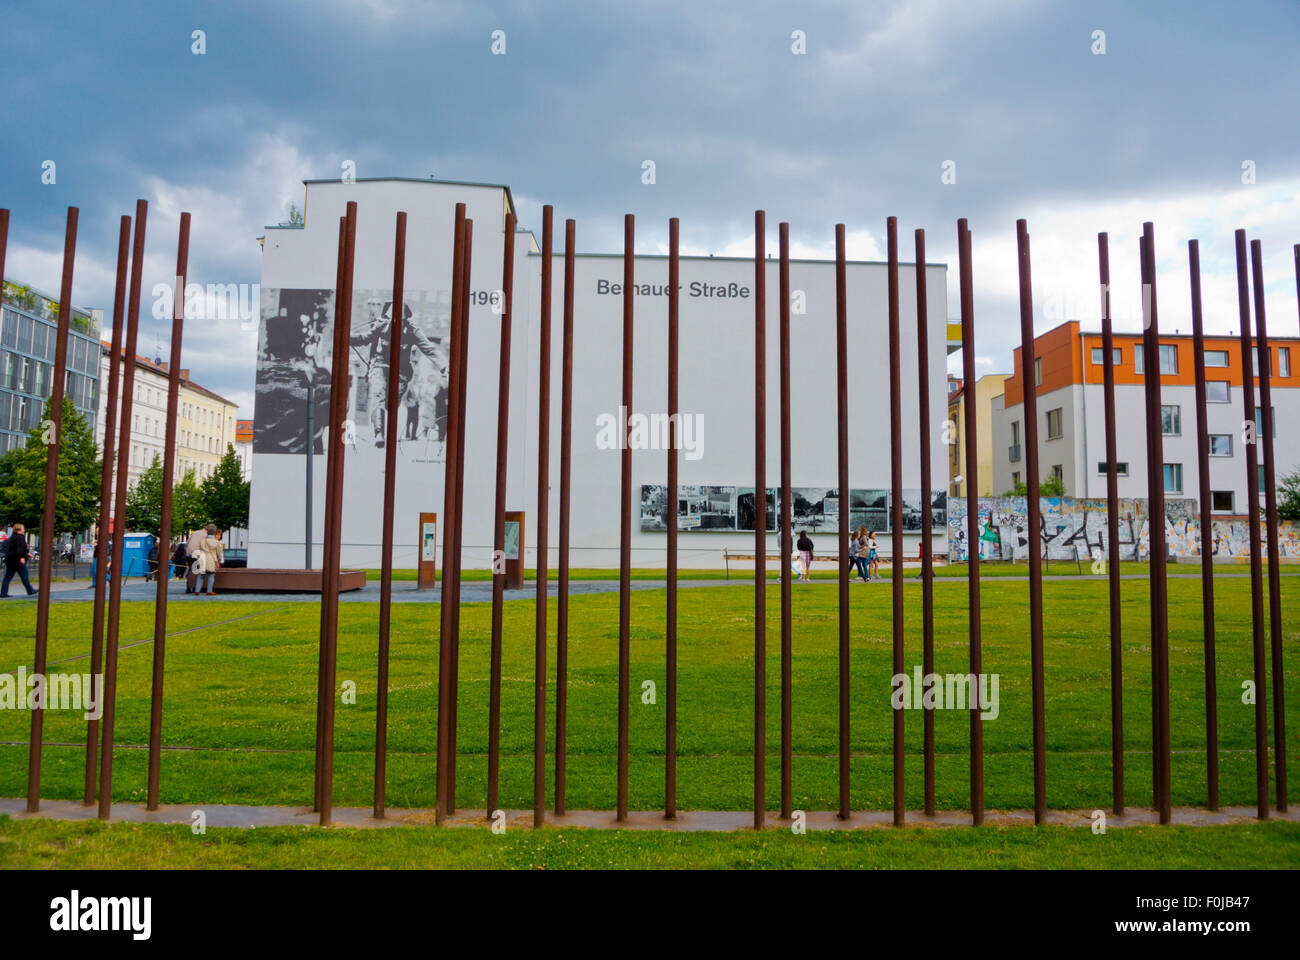 Former wall, Bernauer Strasse, Mitte, Berlin, Germany - Stock Image